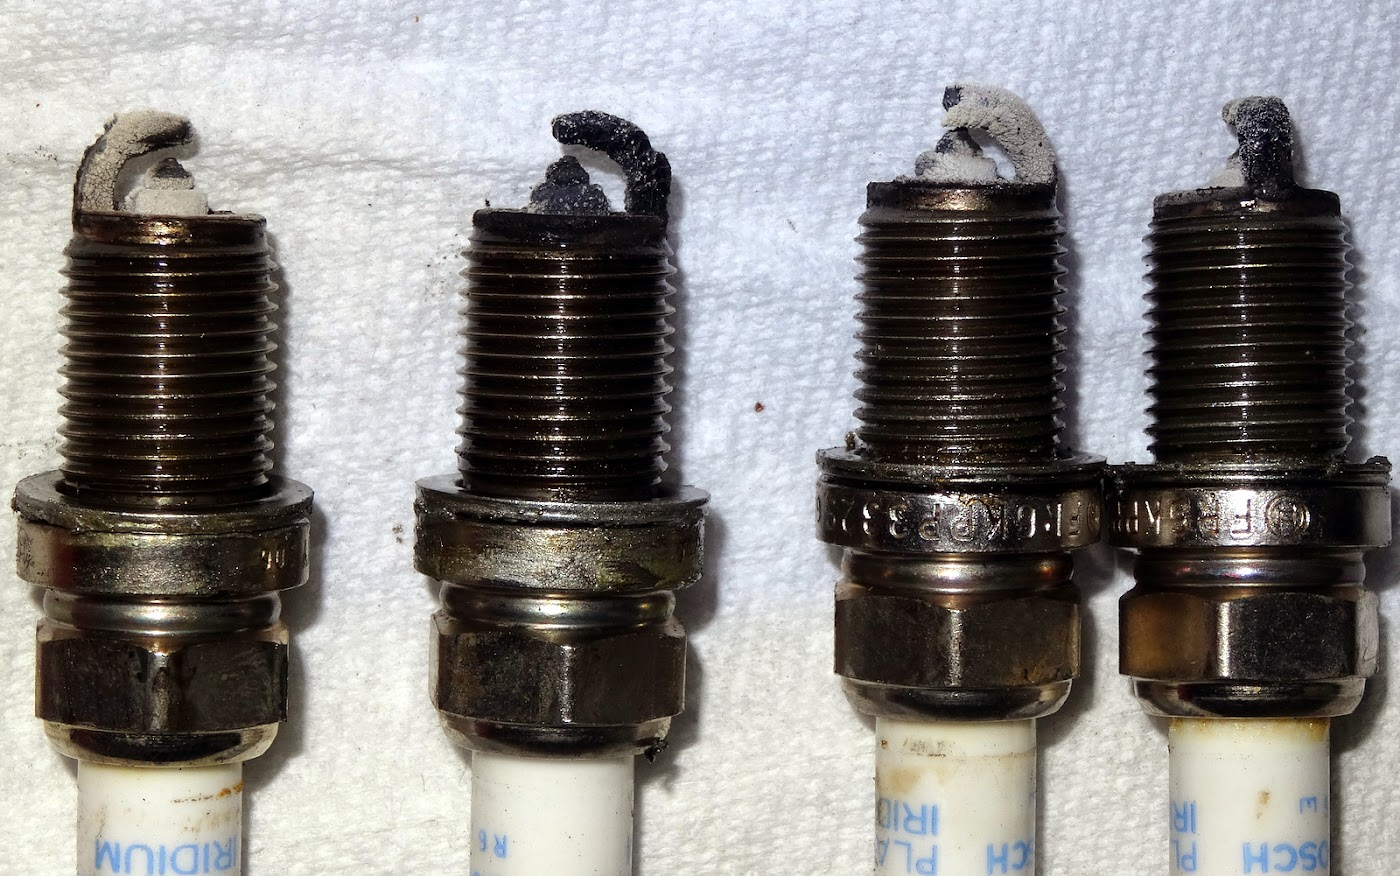 Misfiring Fouled Spark Plugs And Excessive Oil Consumption